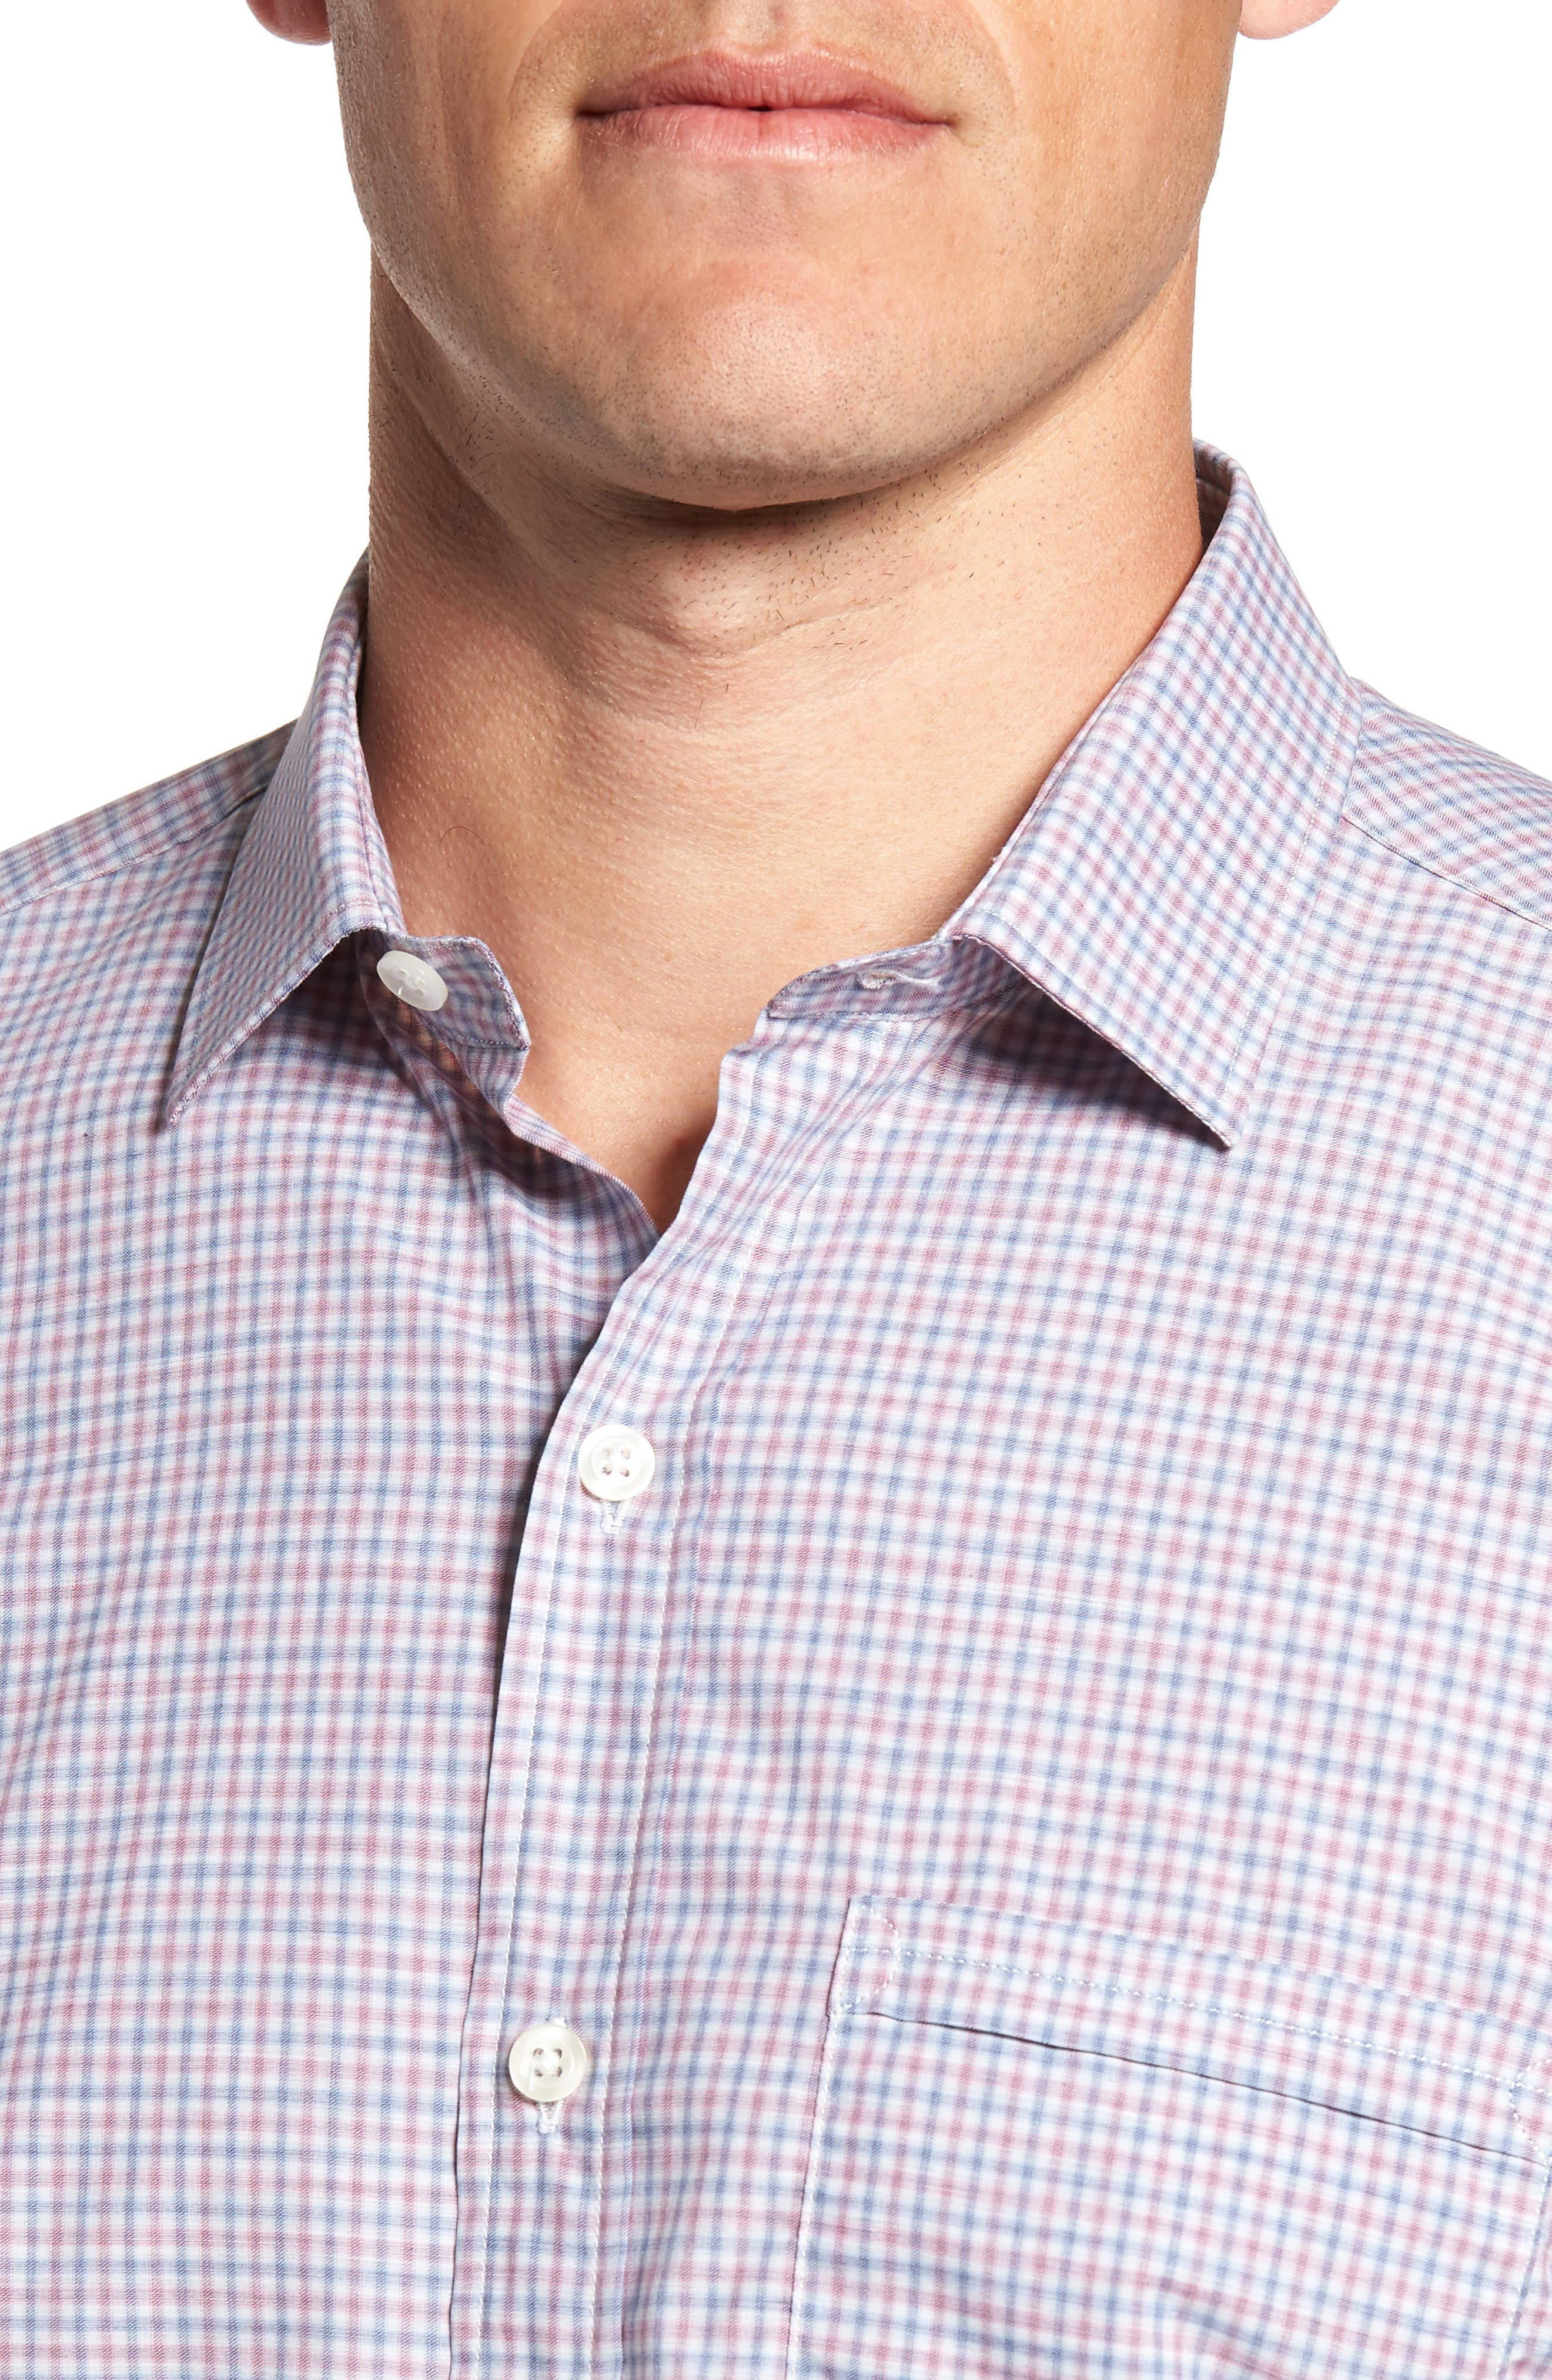 Trim Fit Mini Plaid Sport Shirt,                             Alternate thumbnail 4, color,                             650